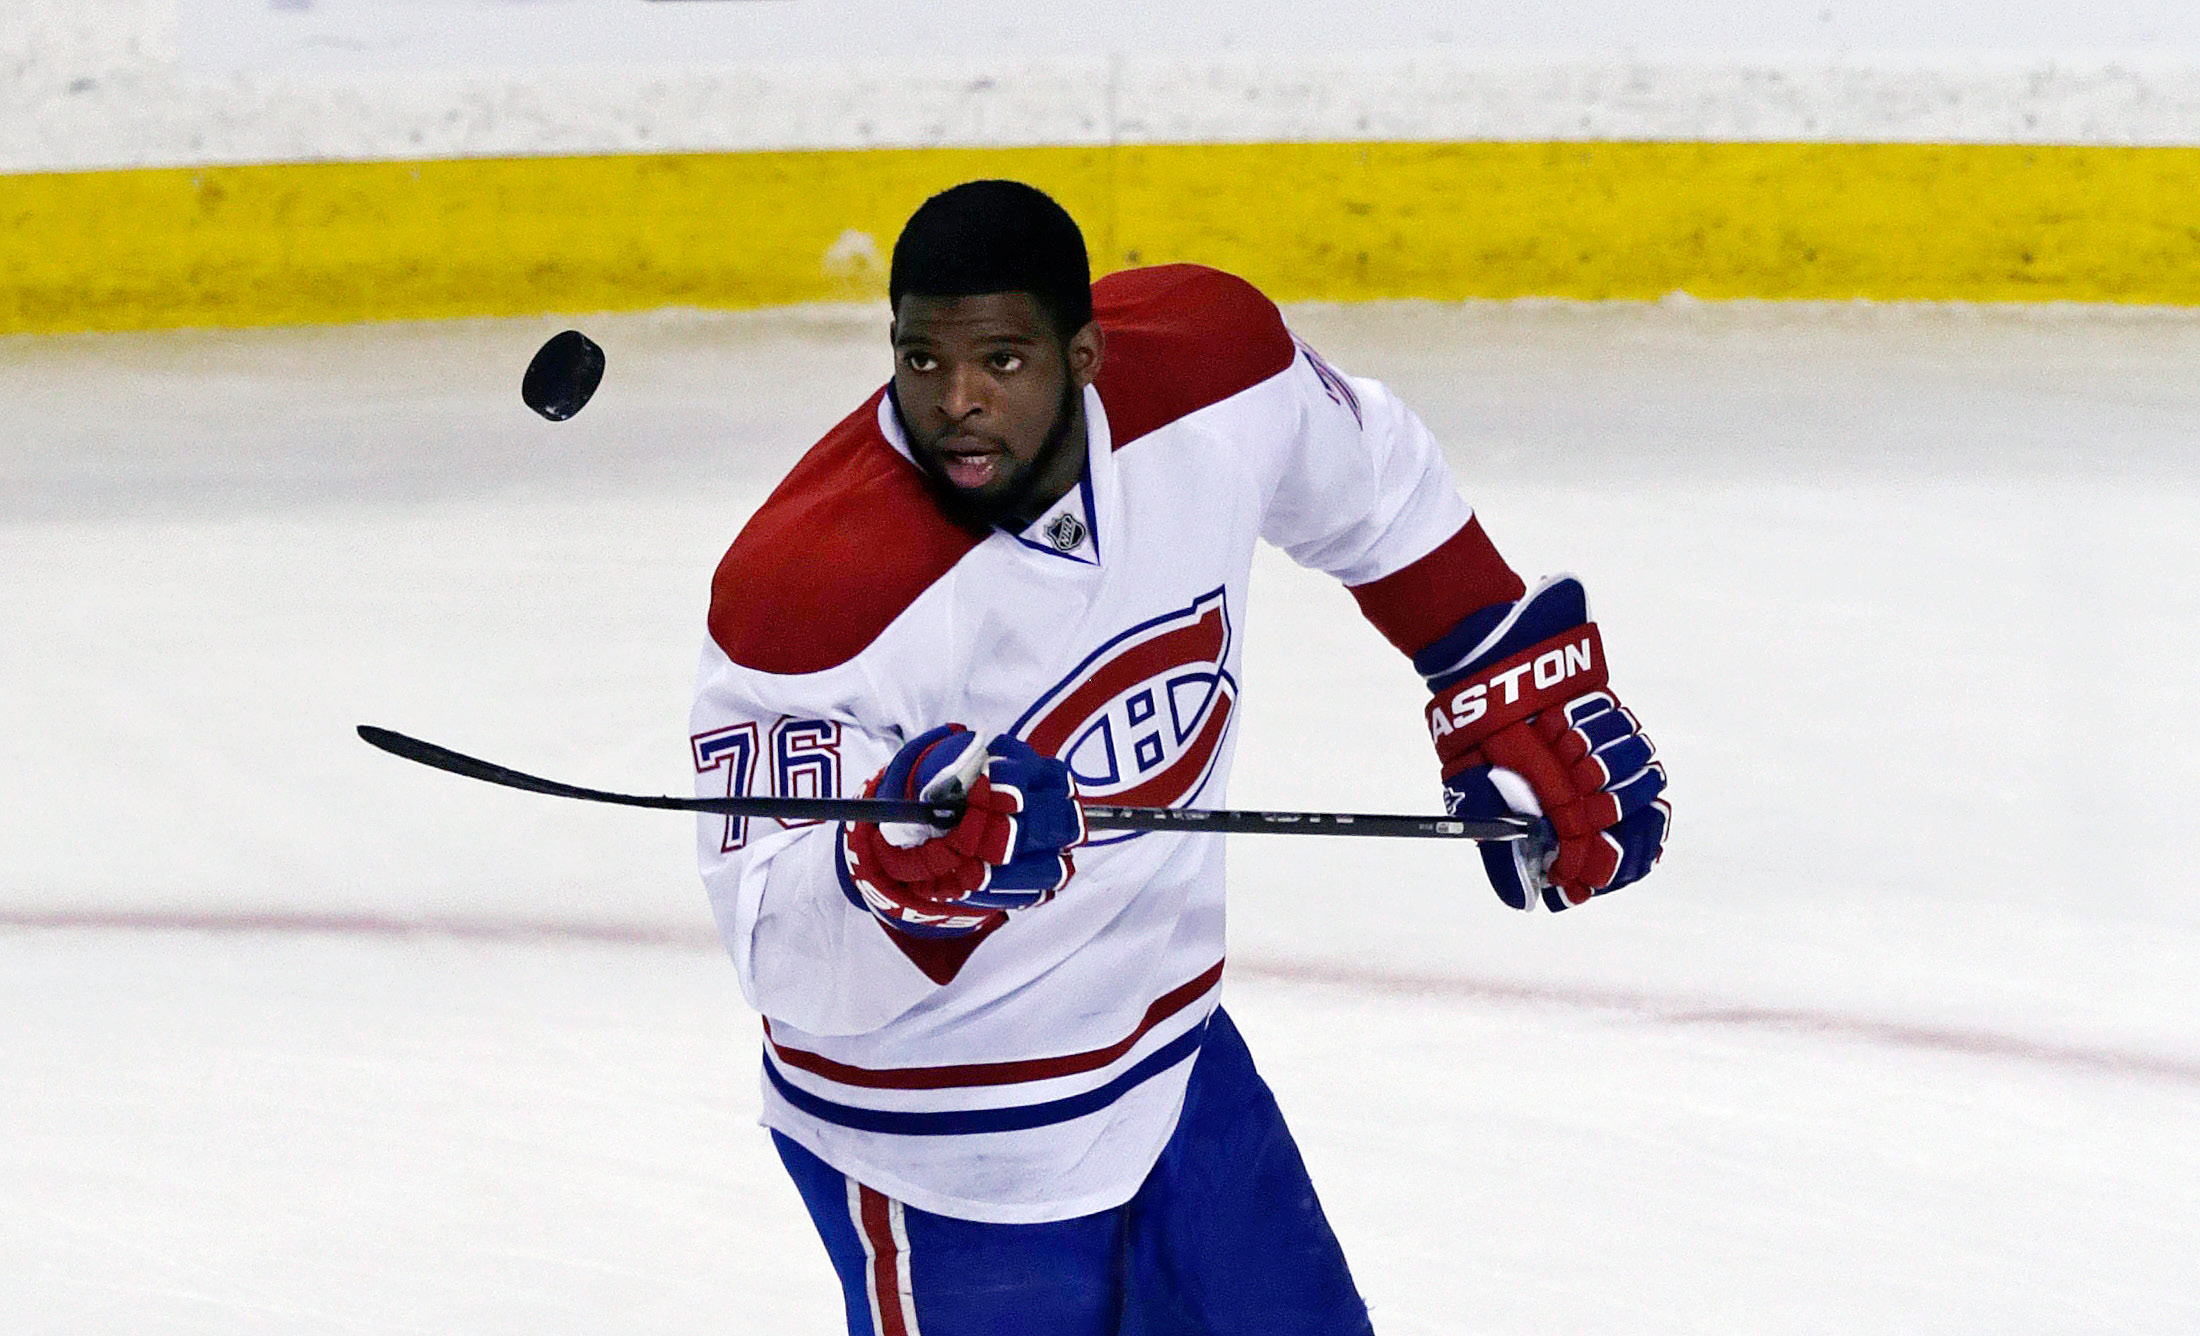 Montreal Canadiens defenseman P.K. Subban flips the puck prior to facing the Boston Bruins in Game 2 in the second-round of a Stanley Cup hockey playoff series in Boston, Saturday, May 3, 2014. (AP Photo/Charles Krupa)